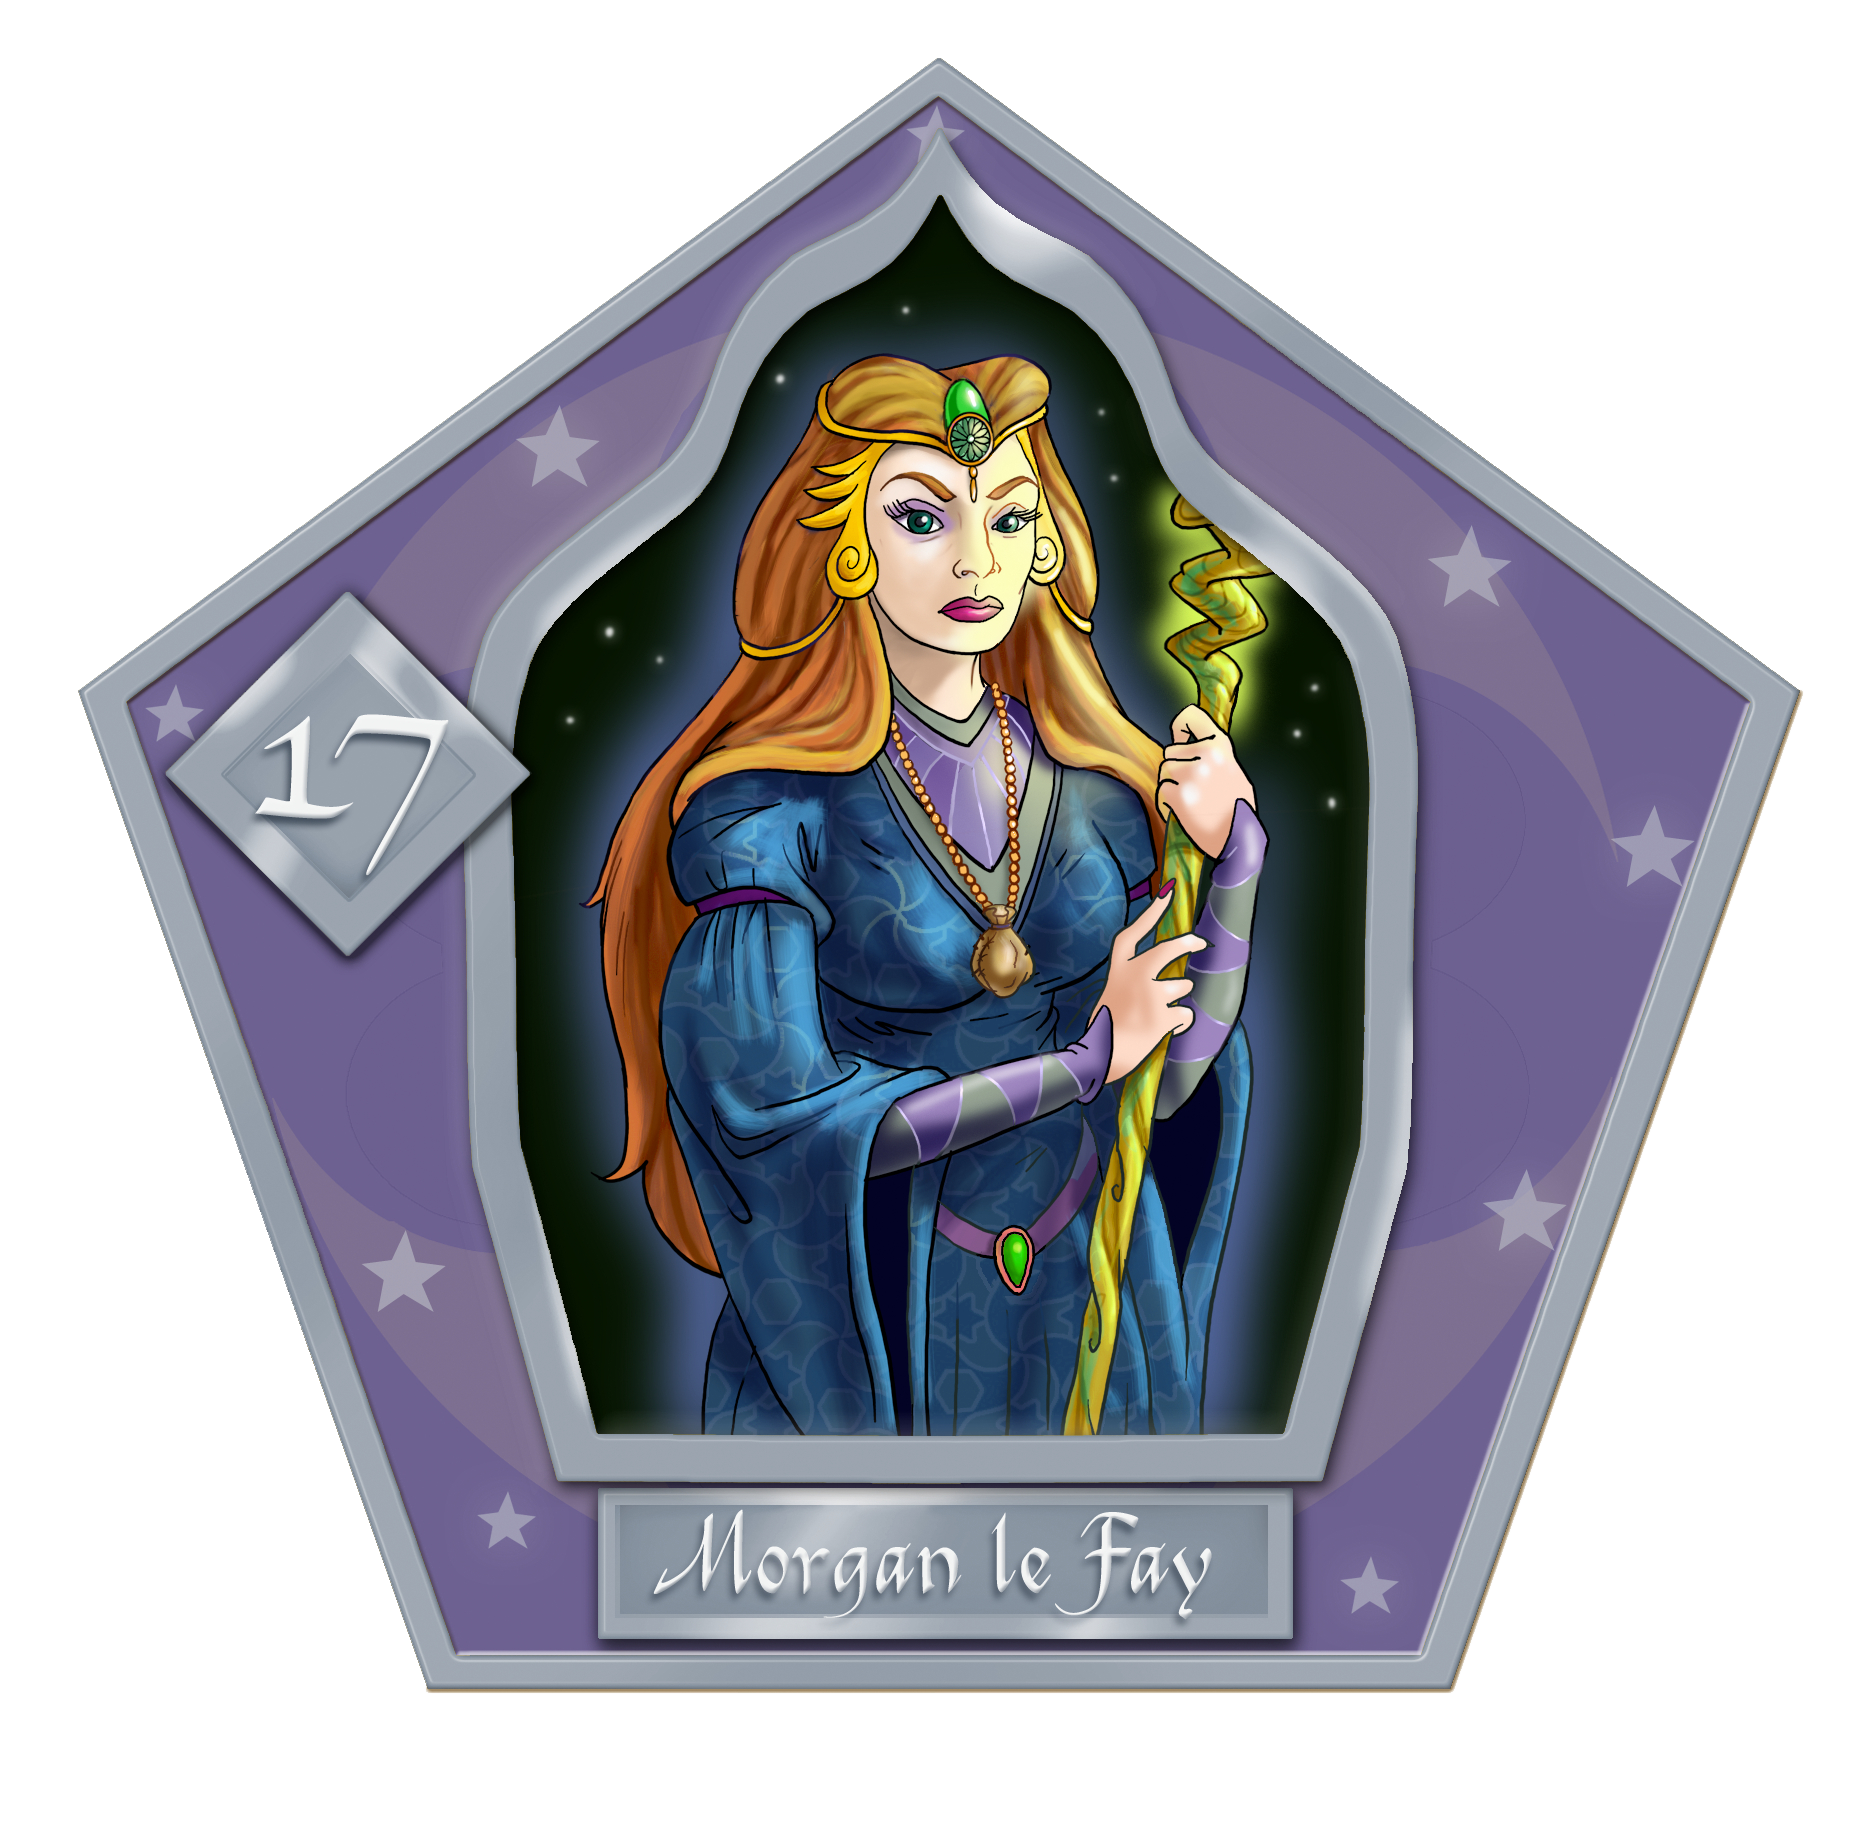 File:Morgan Le Fay-17-chocFrogCard.png